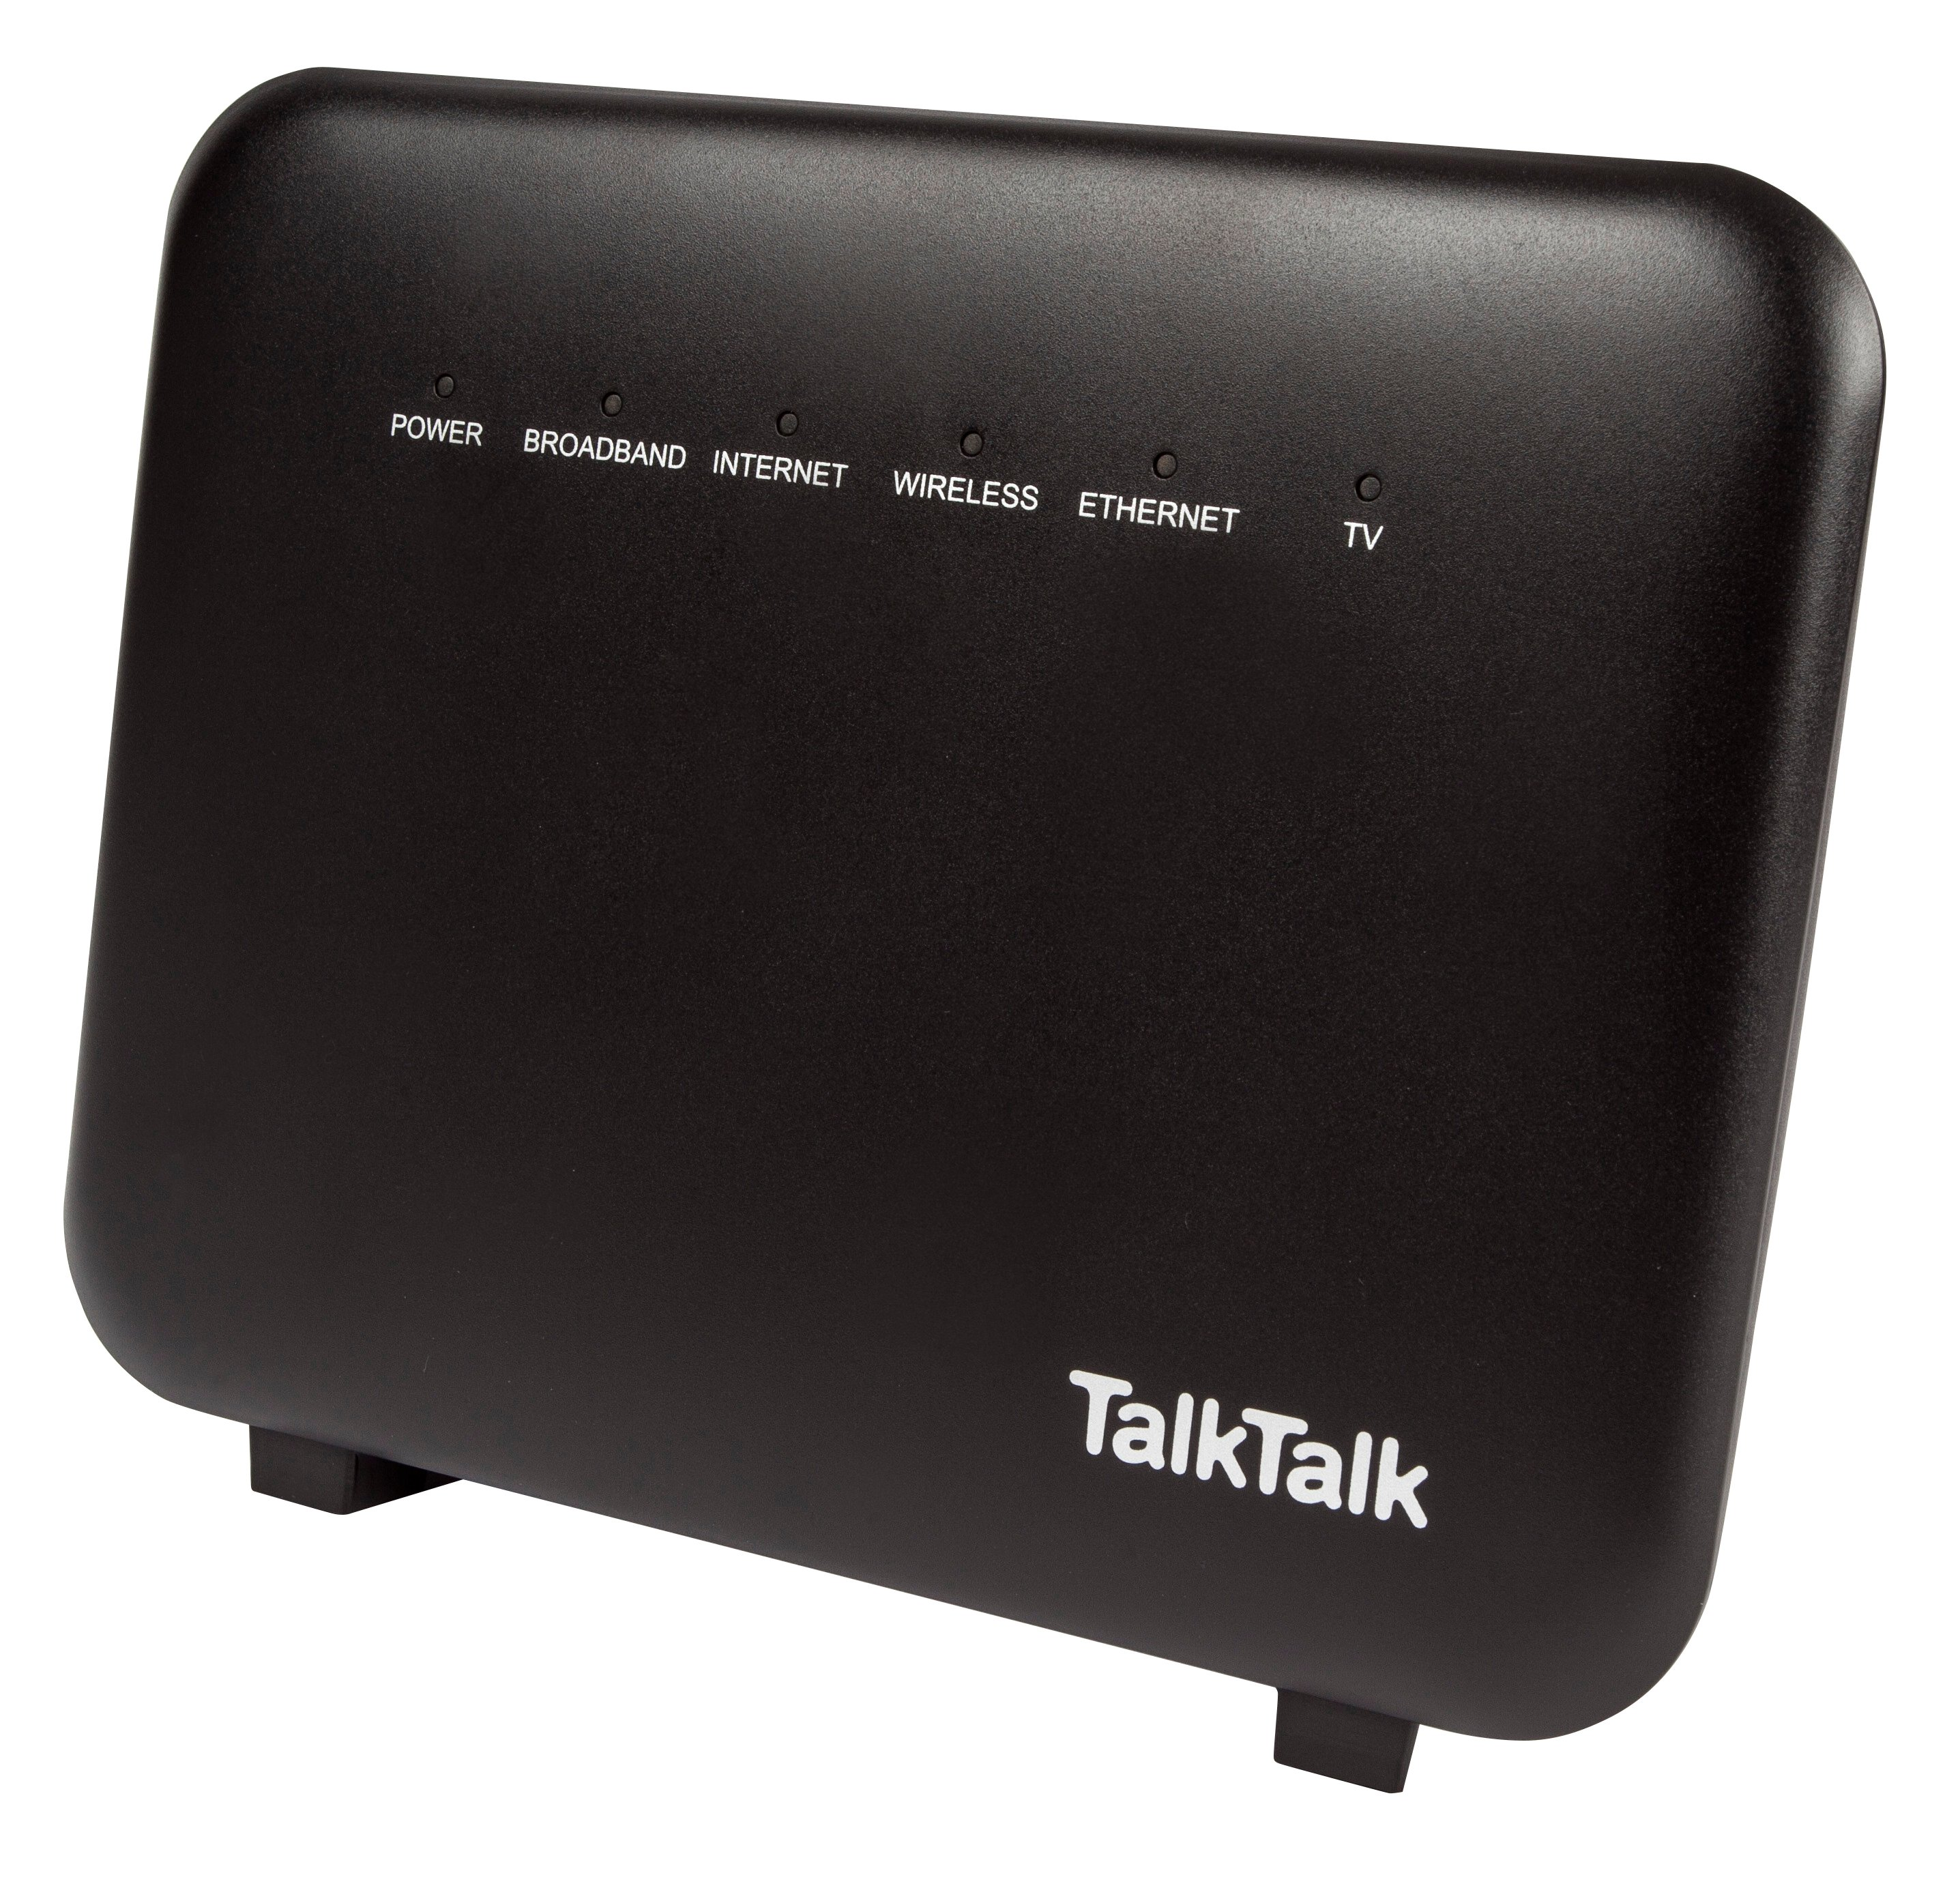 Free TalkTalk Broadband for a year: How cheap is that?